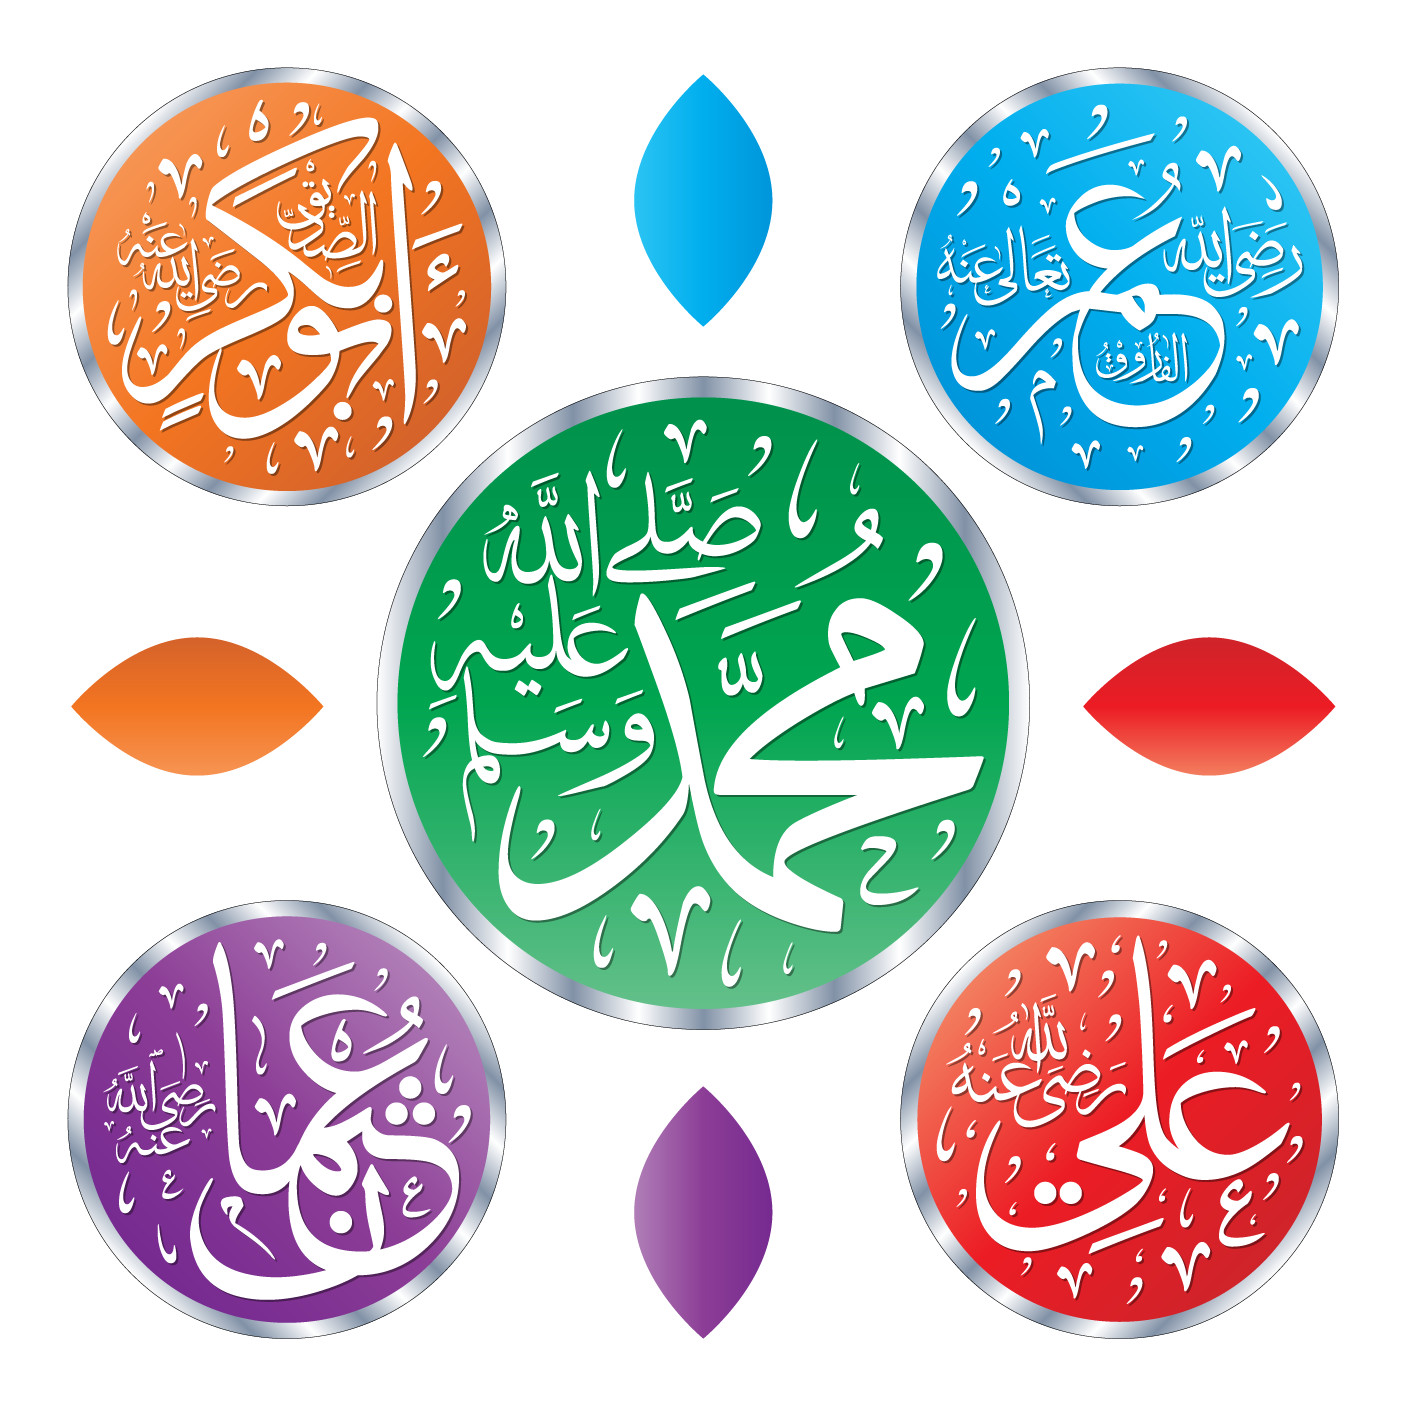 scripts islamic vector svg eps psd ai pdf png vector download free #islamic #islam #arab #arabic #vector #vectors #Quran #design #fonts #font #ramadan #hijri #year